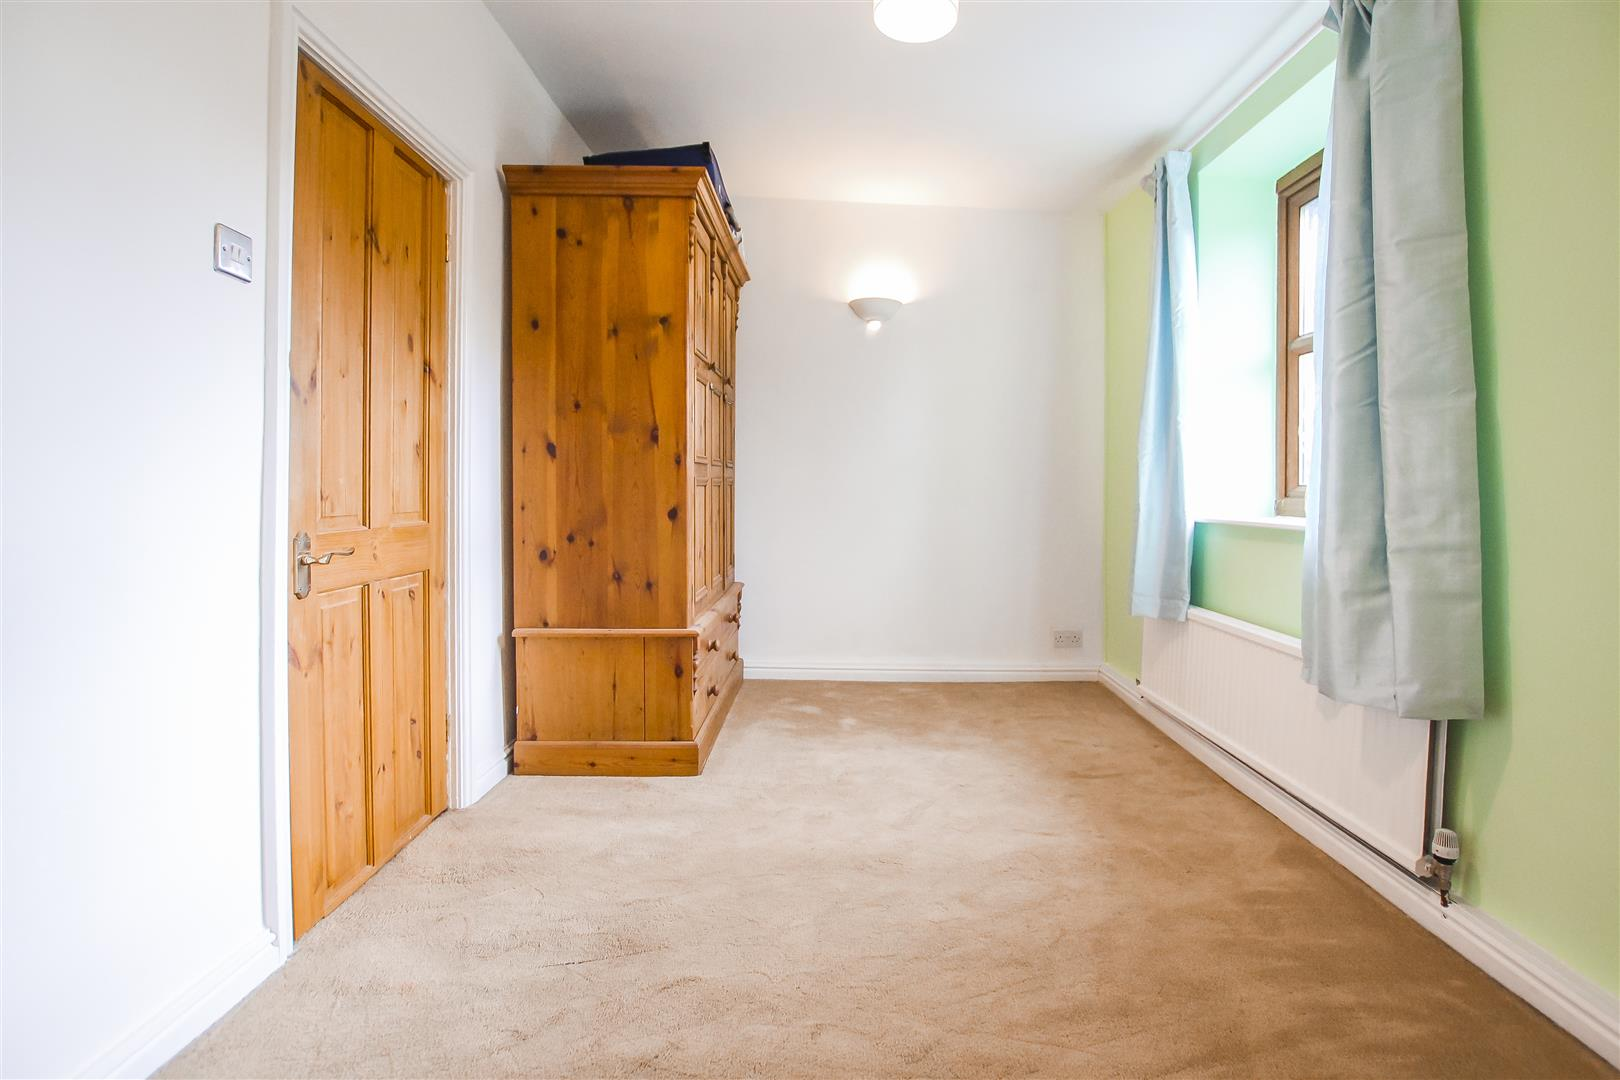 4 Bedroom Farmhouse For Sale - Image 38